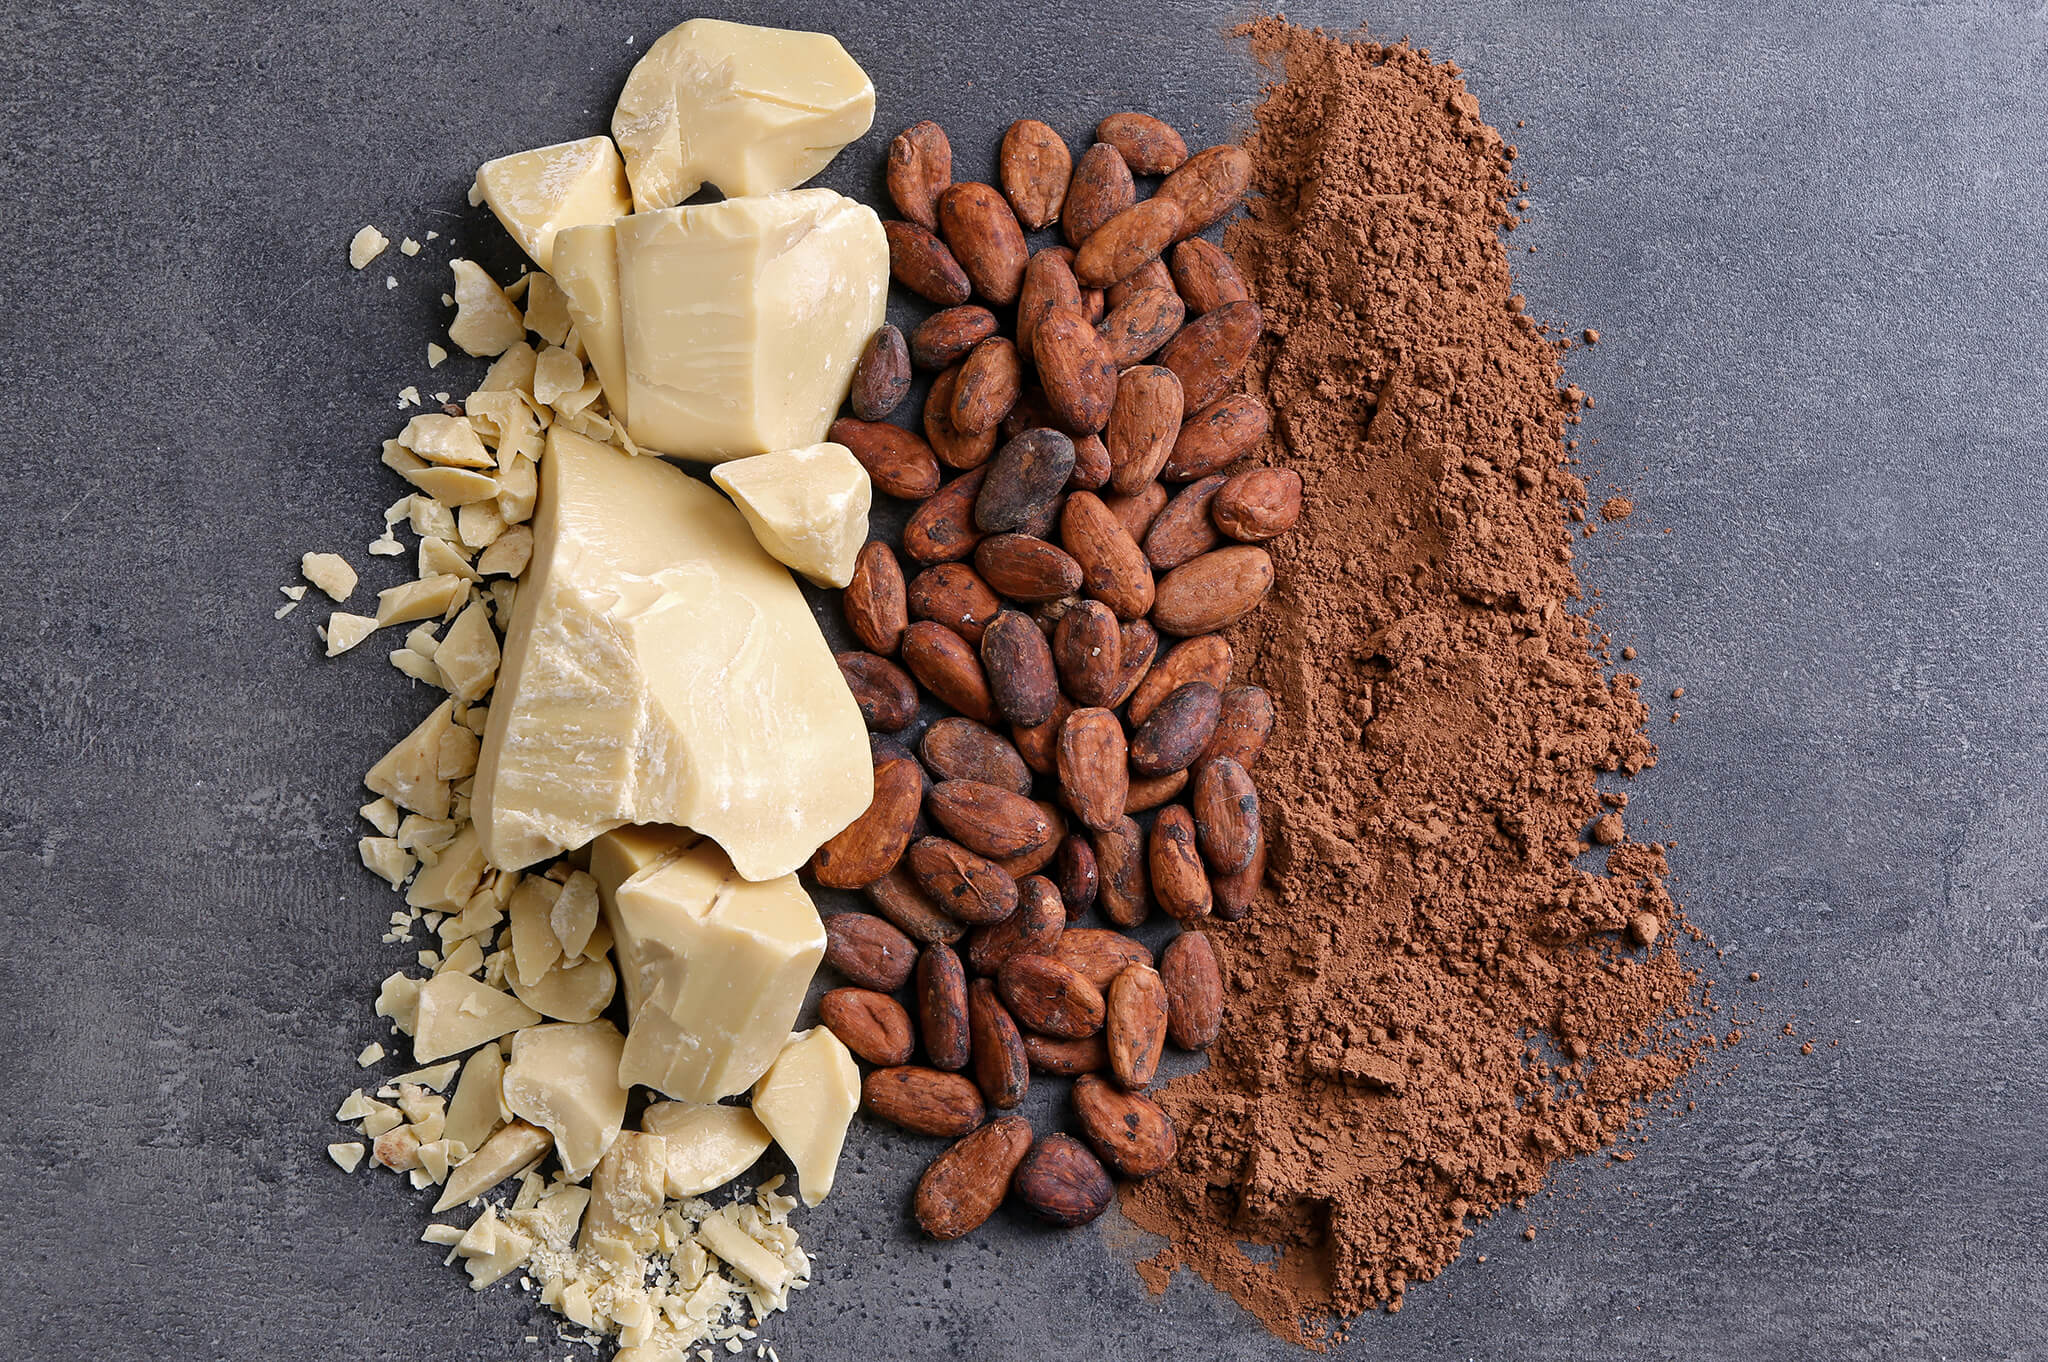 Cocoa Butter: Manufacturing, Uses, Benefits, and Where to Buy